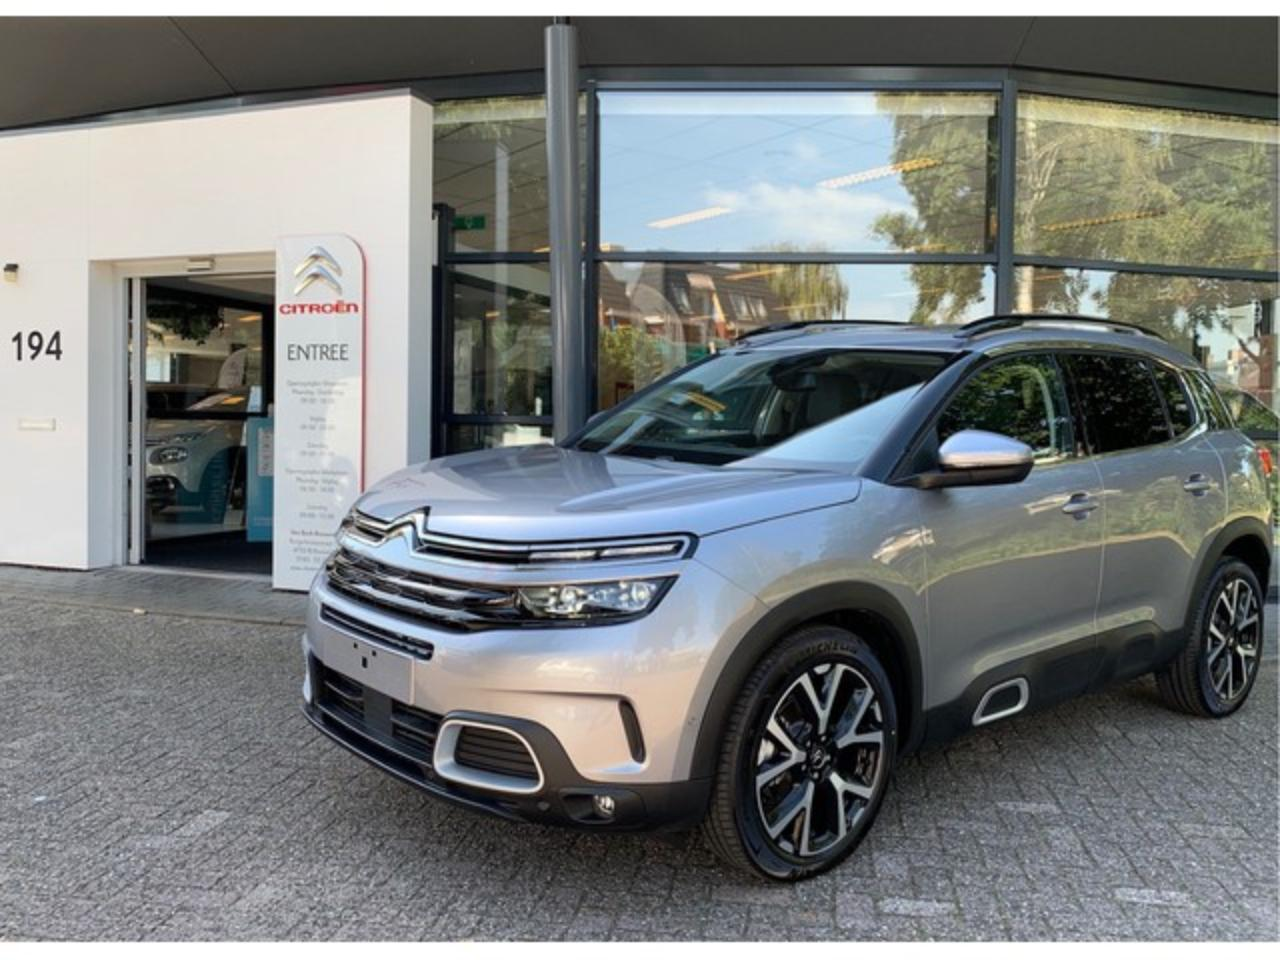 Citroën C5 AIRCROSS PureTech turbo 130pk Business Plus